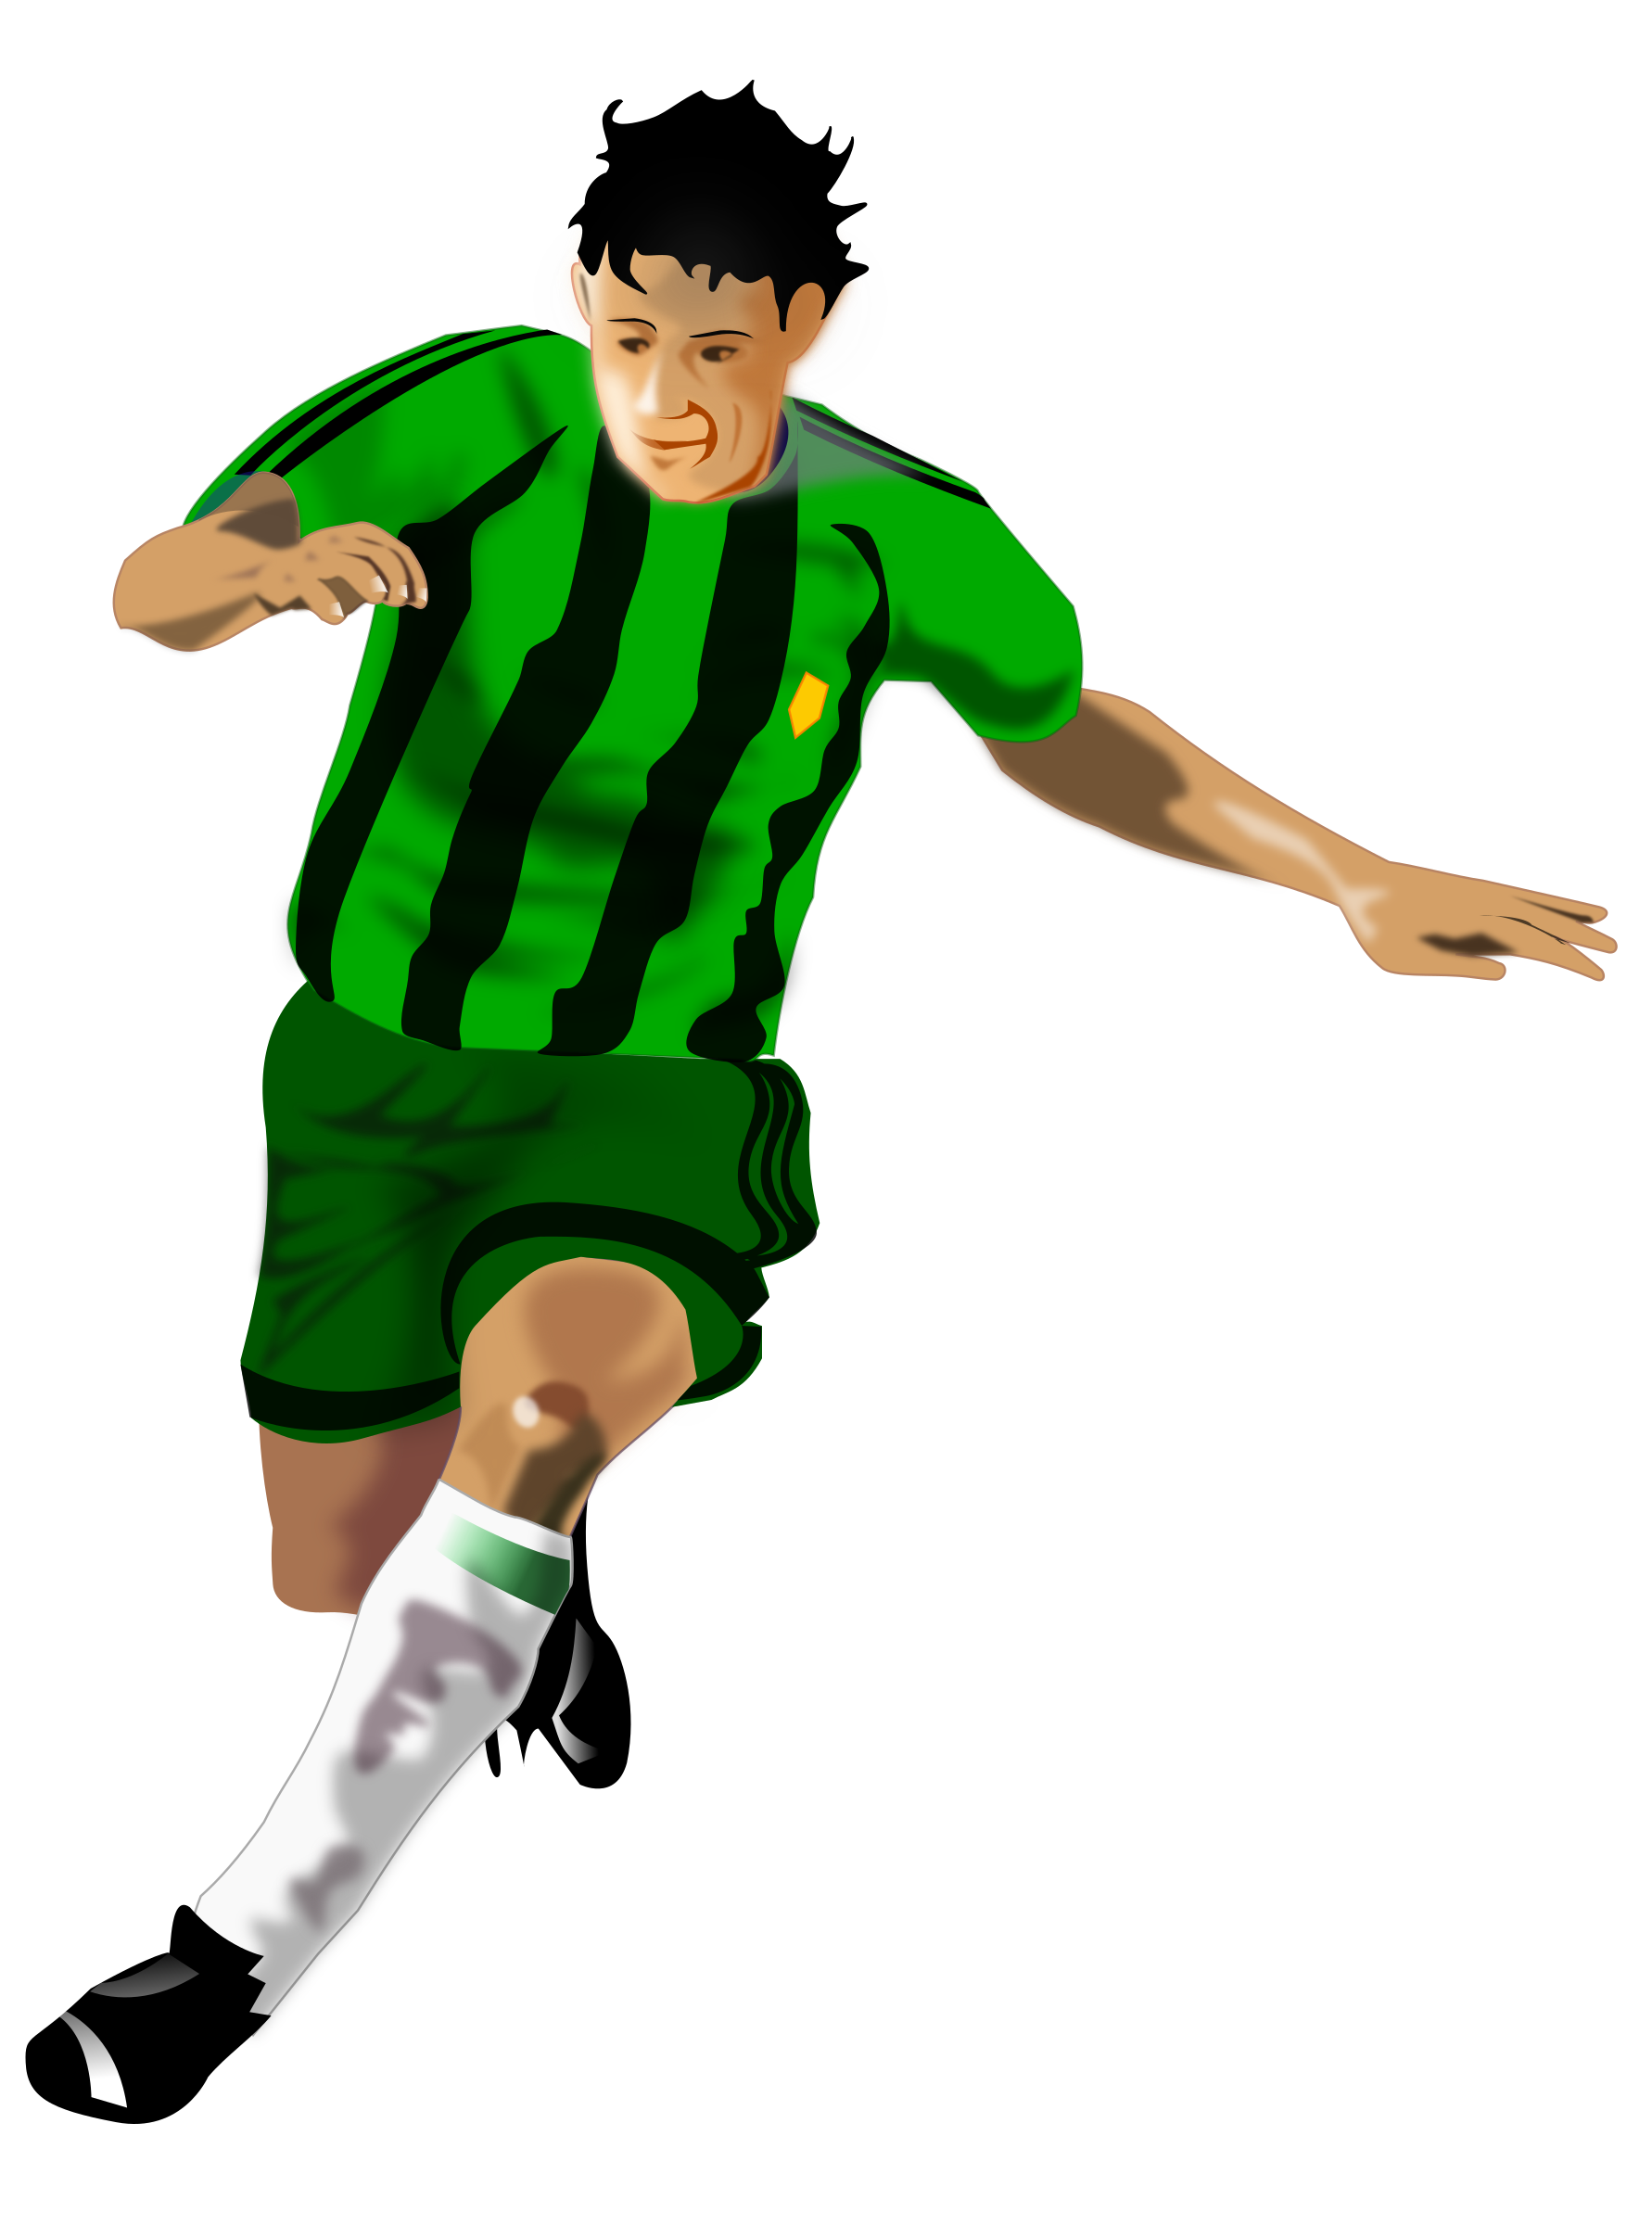 Running football player clipart clip art library stock Clipart - Soccer Player (Green/Black) clip art library stock